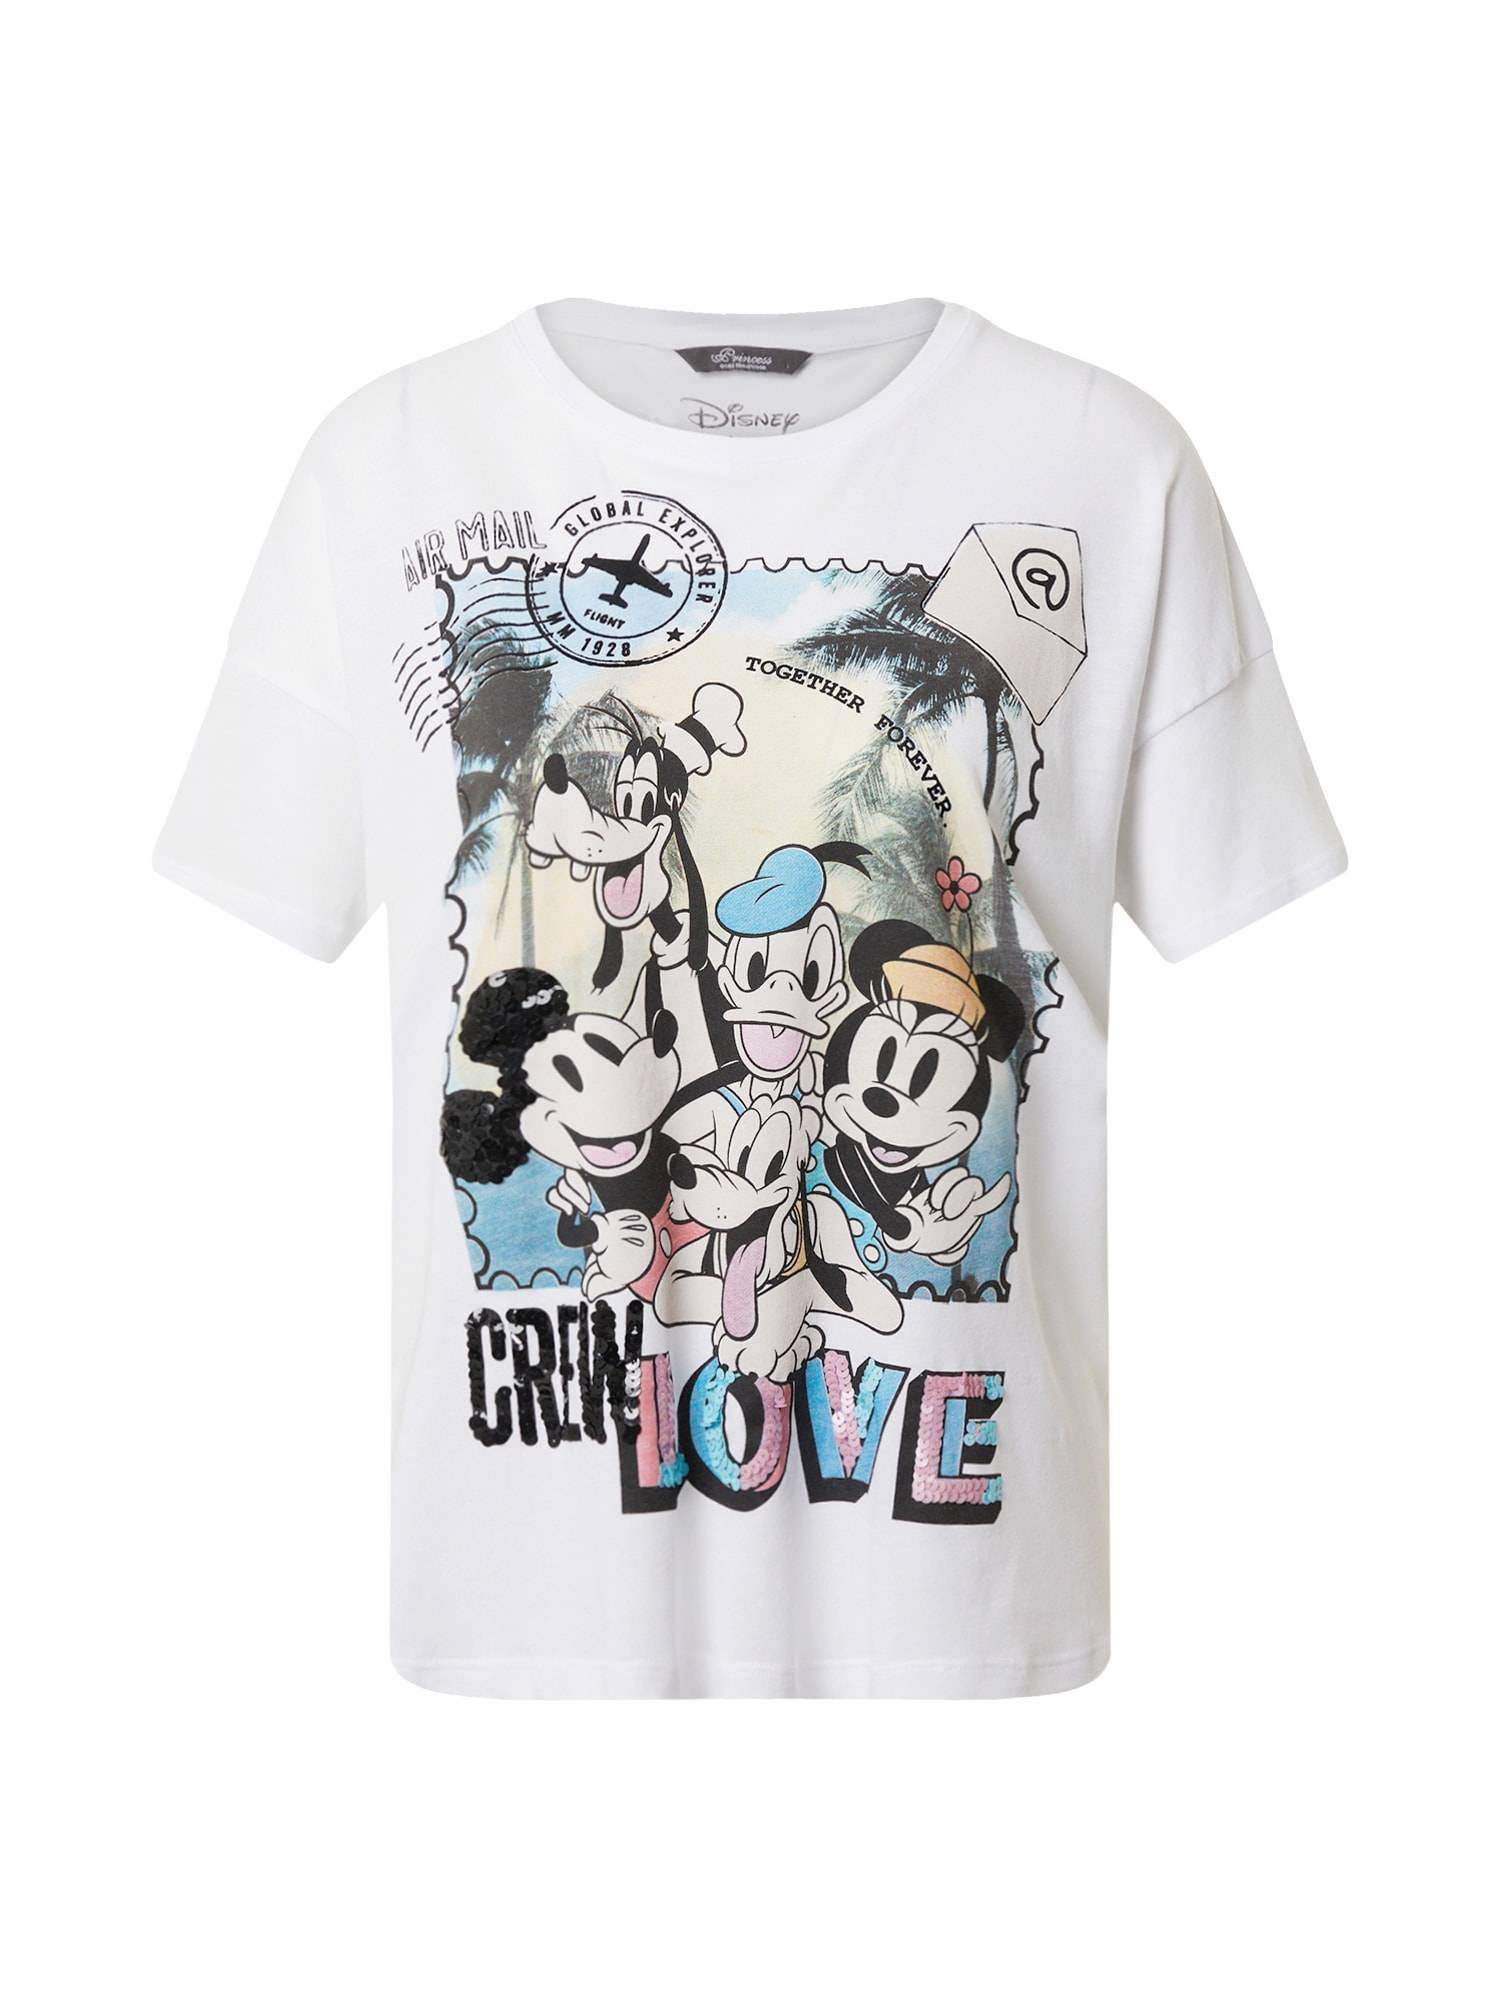 Princess T-shirt 'Disney Crew Love'  - Blanc - Taille: 42 - female